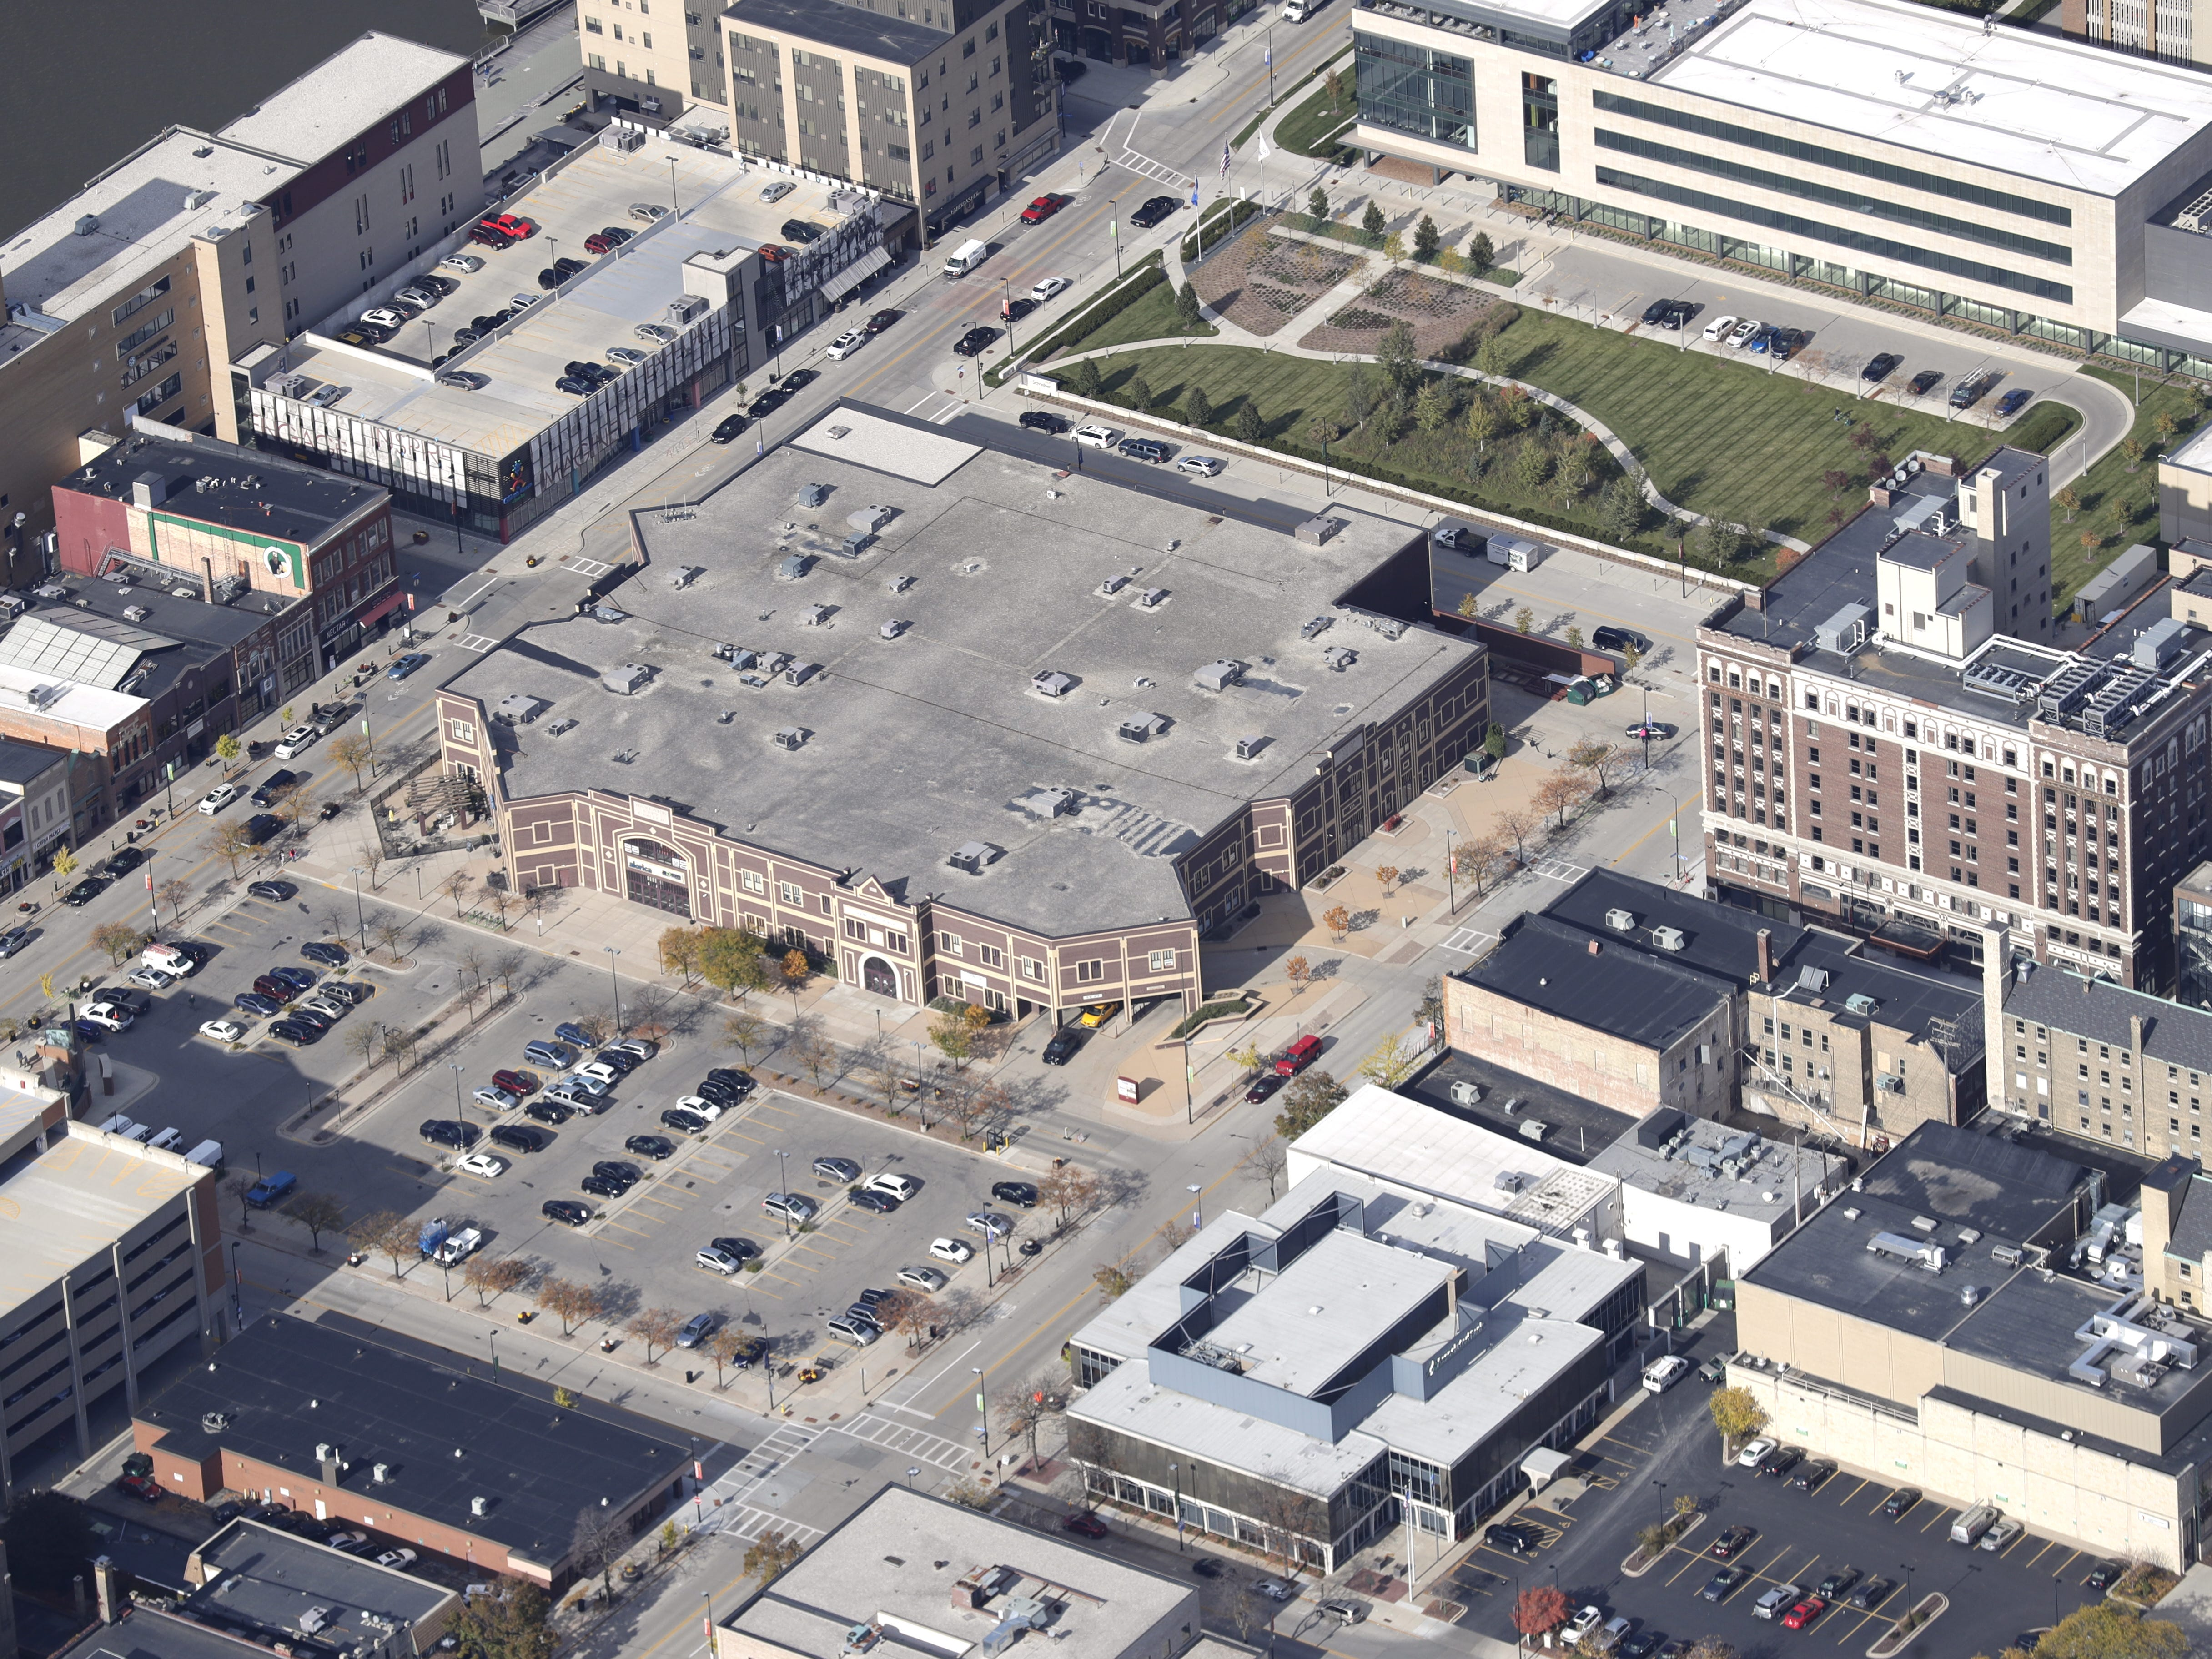 The BayLake Bank building and surrounding properties in downtown Green Bay